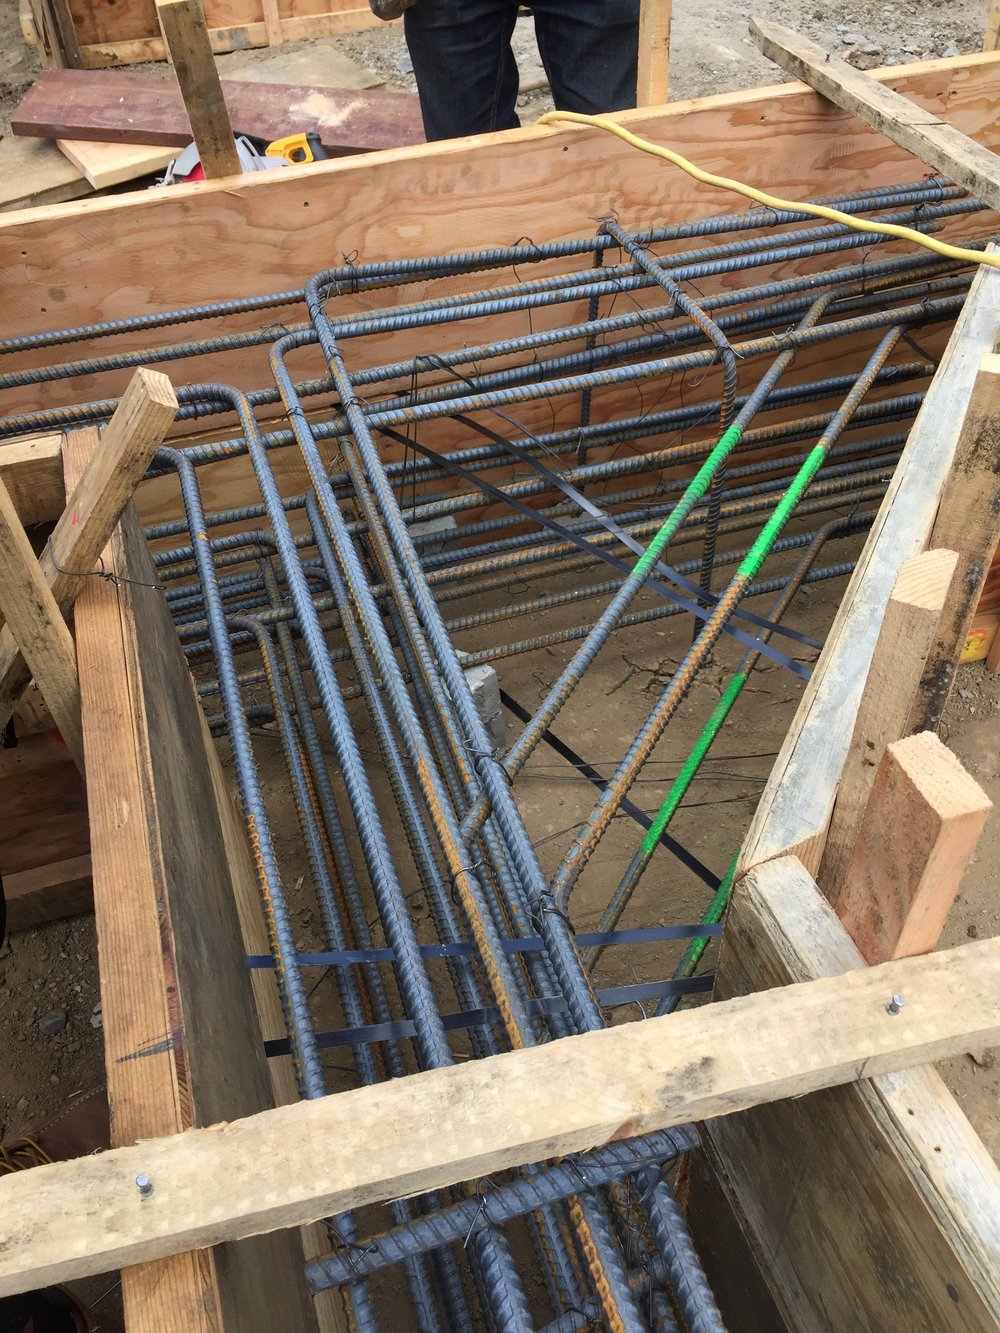 An impressive array of rebar for 1,300 square feet of single-family residential addition.